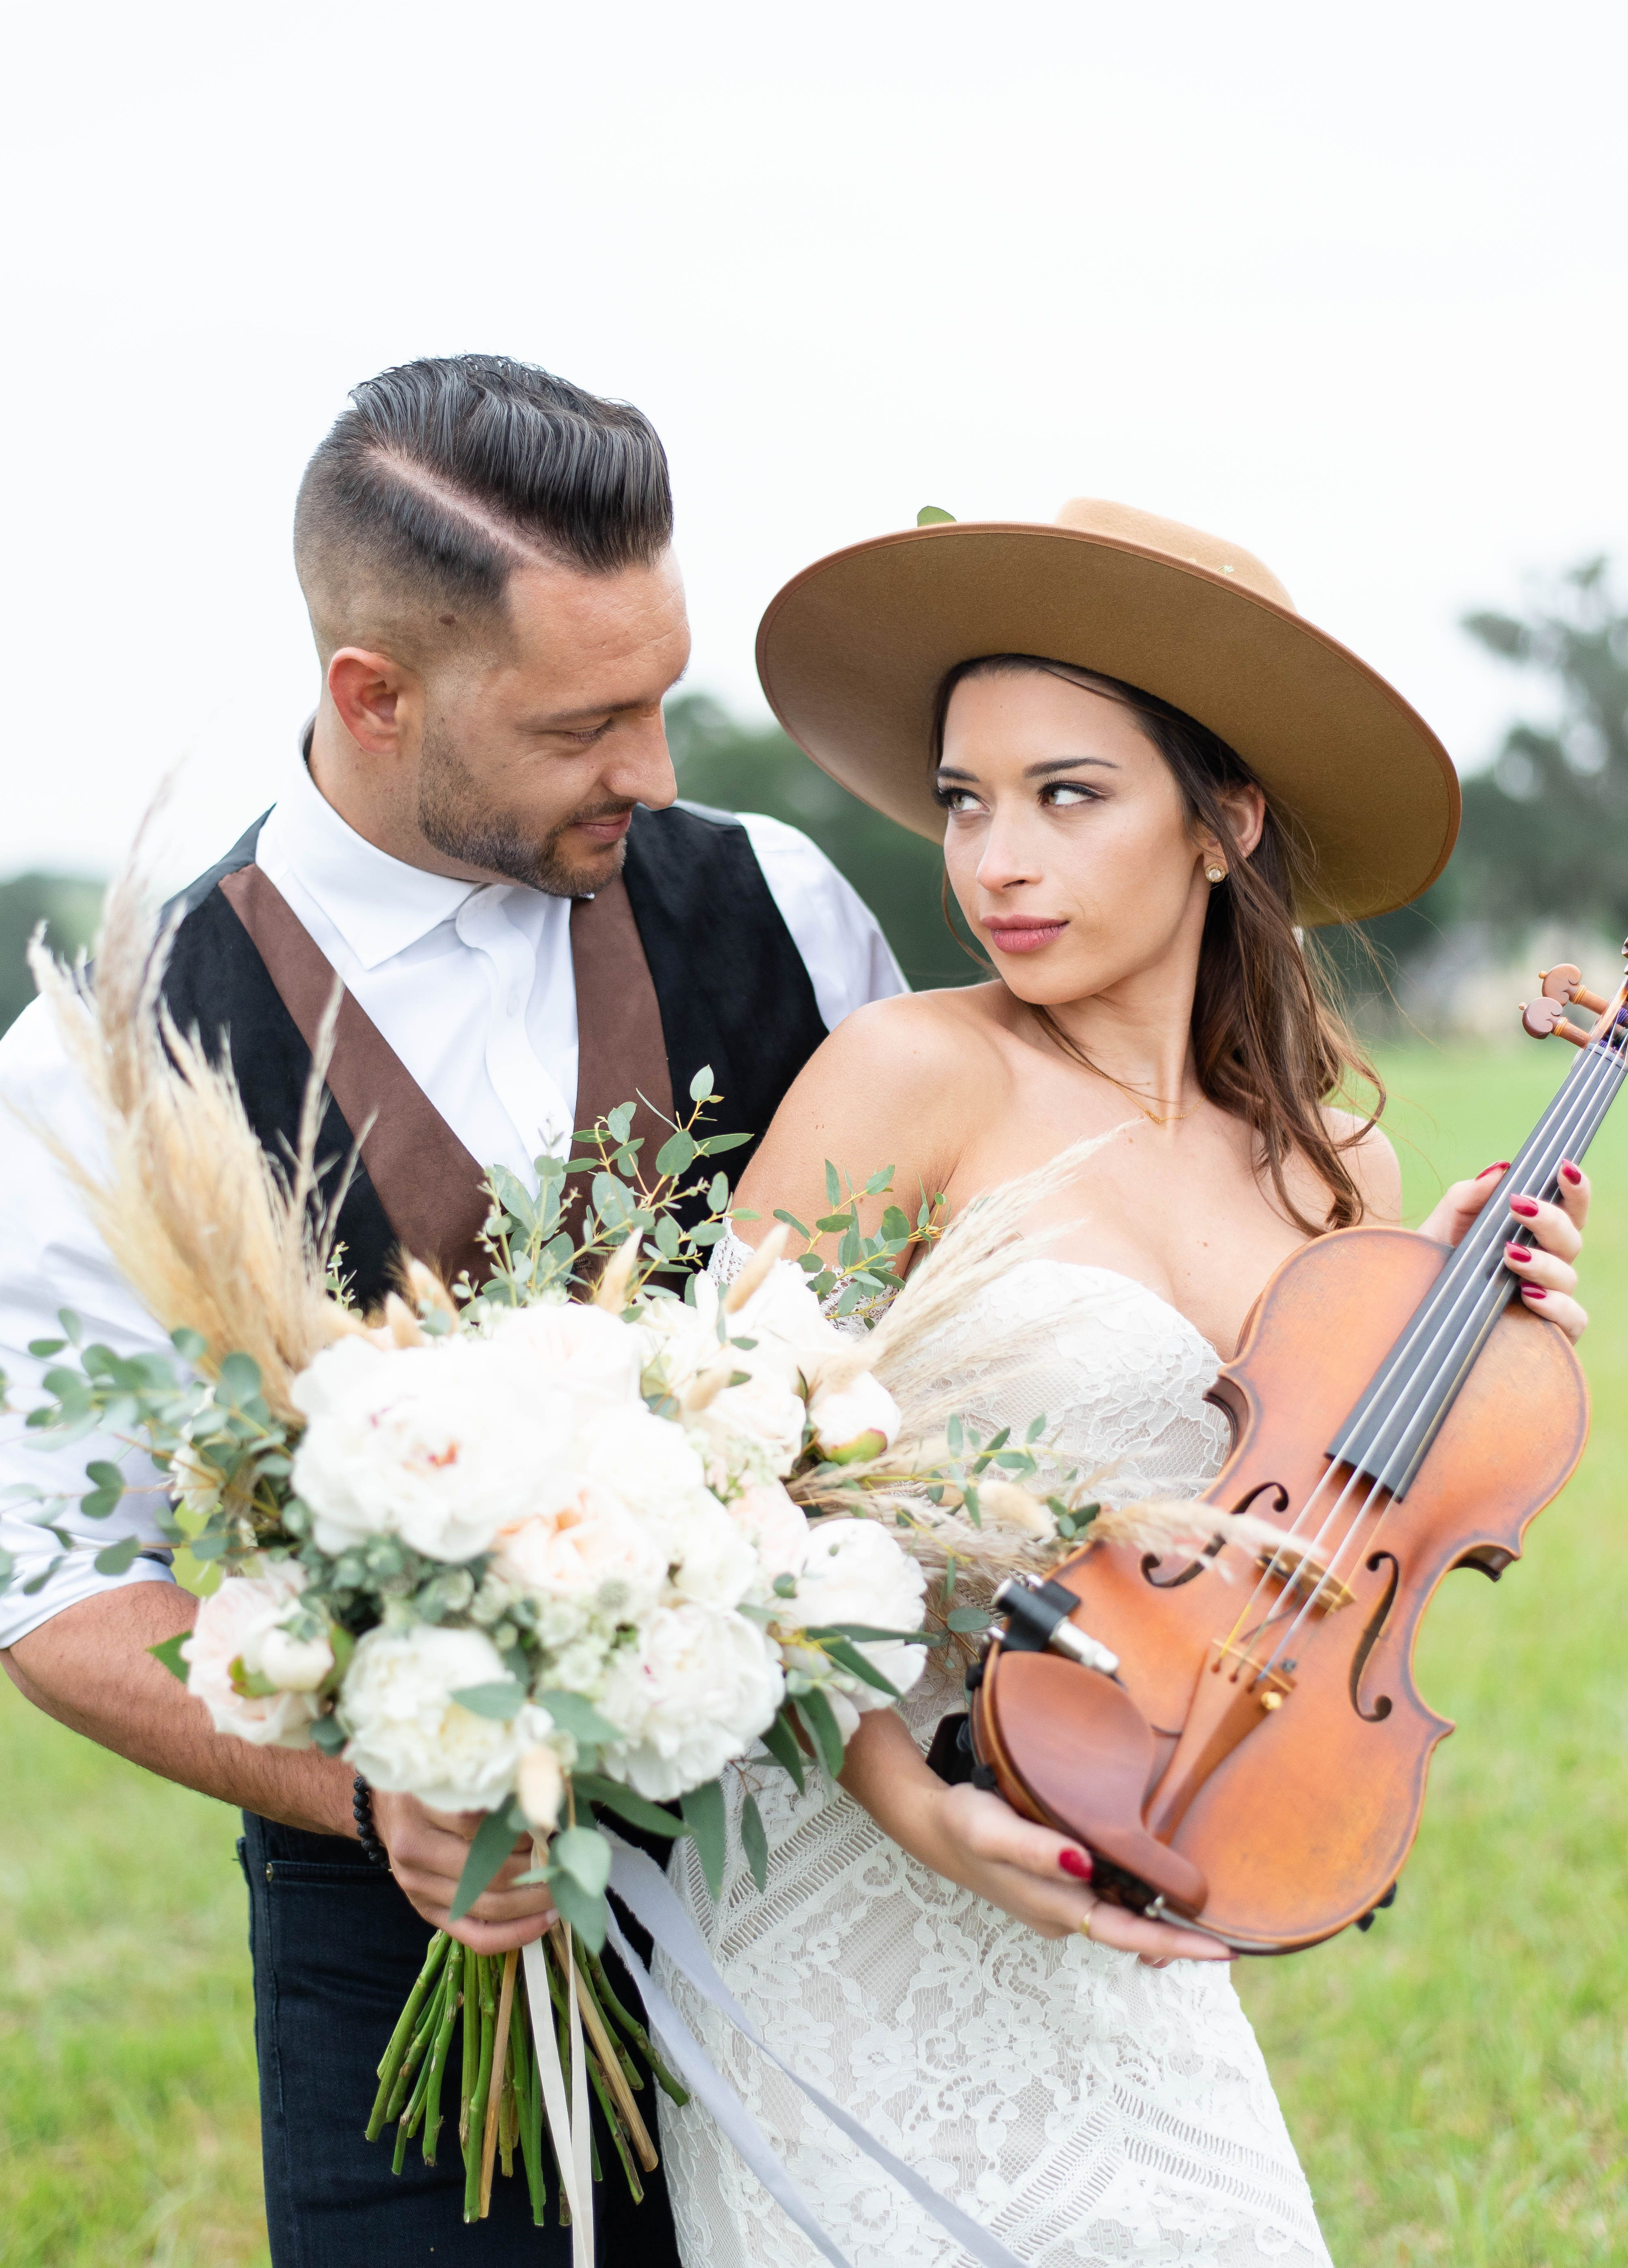 Violin music for your walk down the aisle!! So romantic